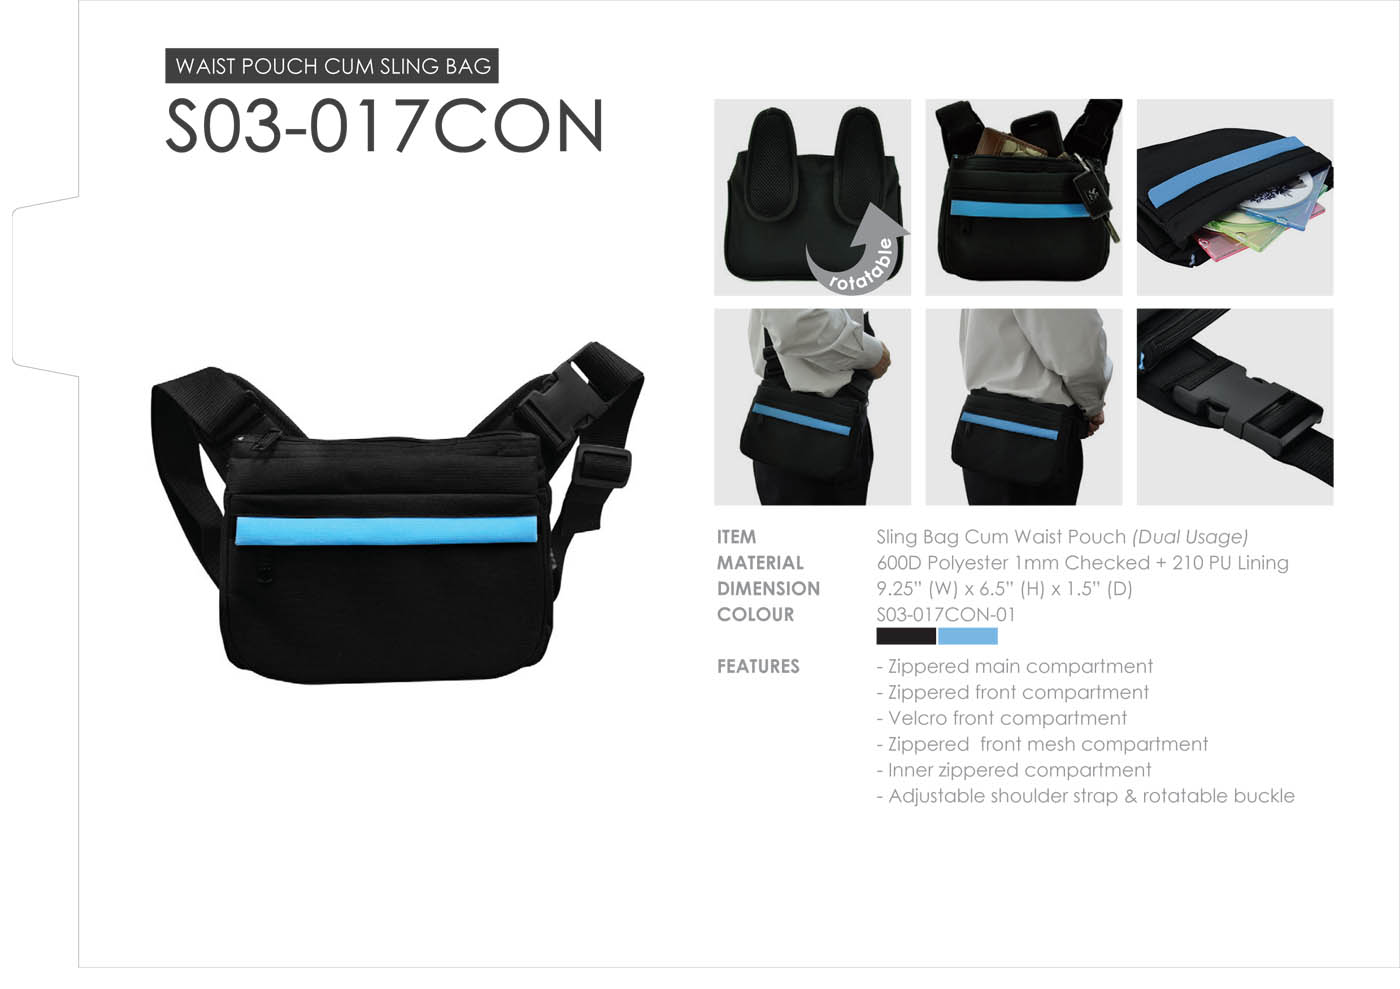 BM Sling Bag cum Waist pouch S03-017 (end 5/16/2015 2:12 PM)